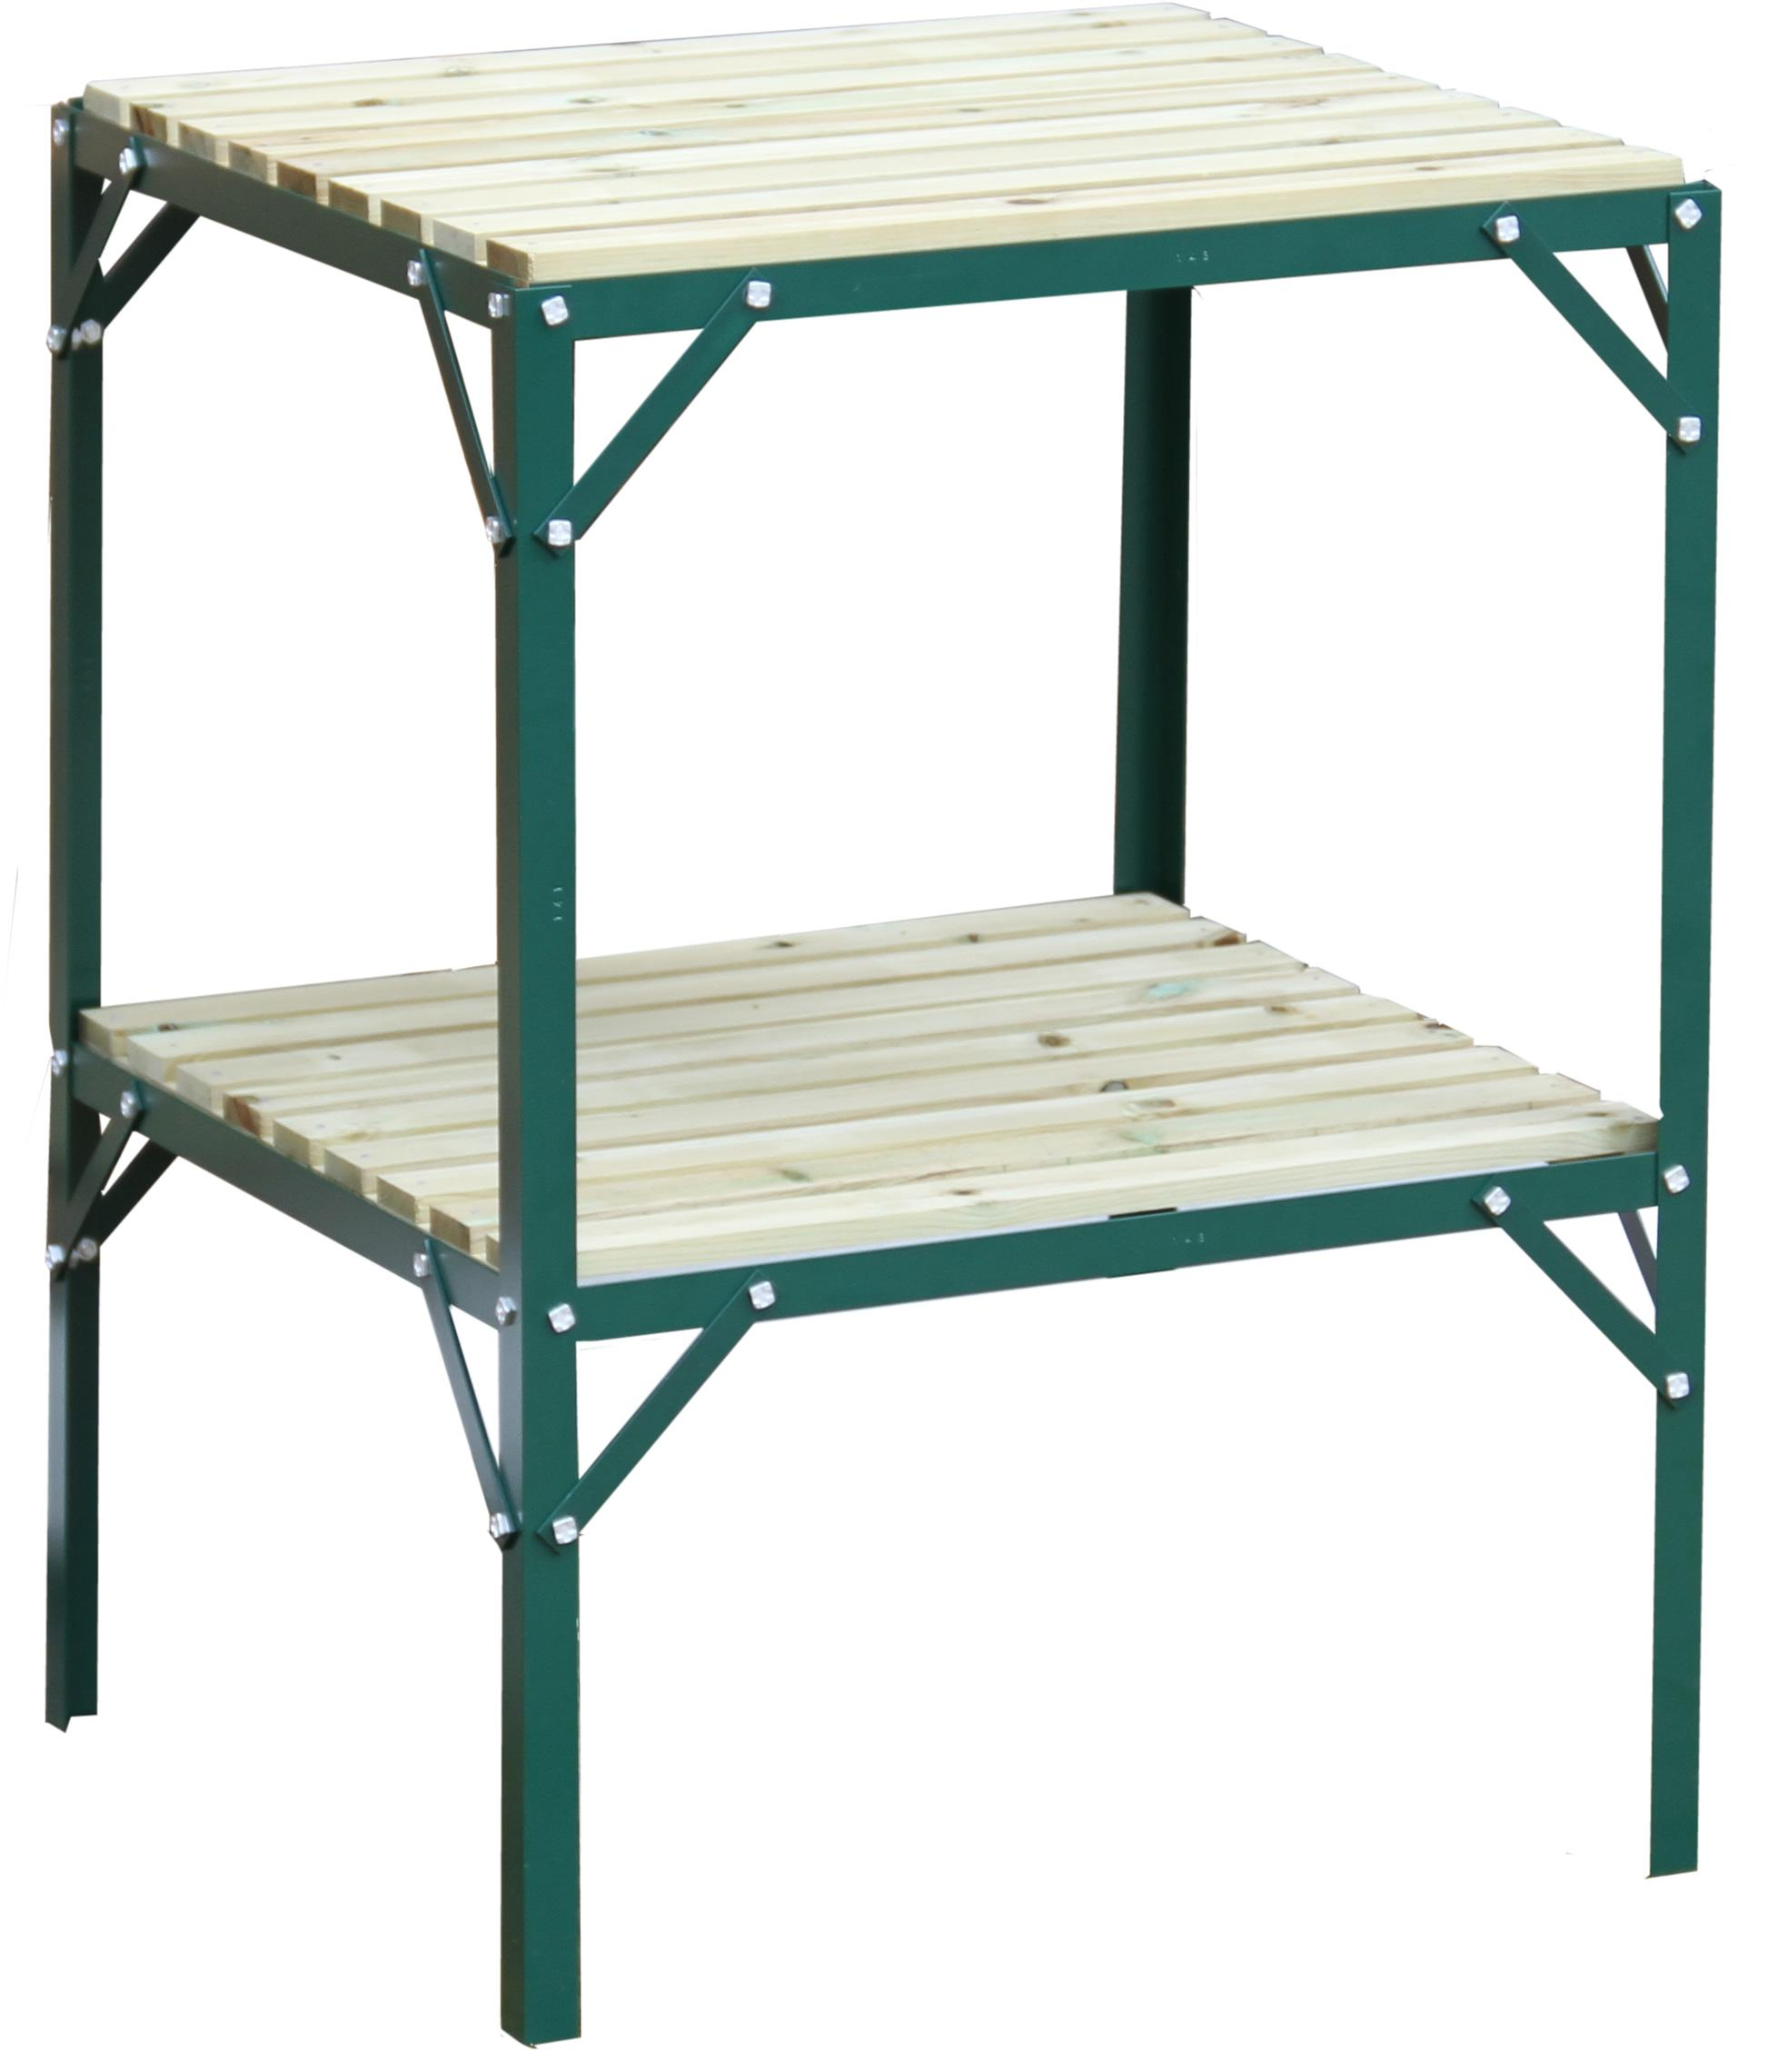 Greenhouse Staging Bench Grow Plant Shelves Two Tier 2ft Wide X 2ft Long Ebay